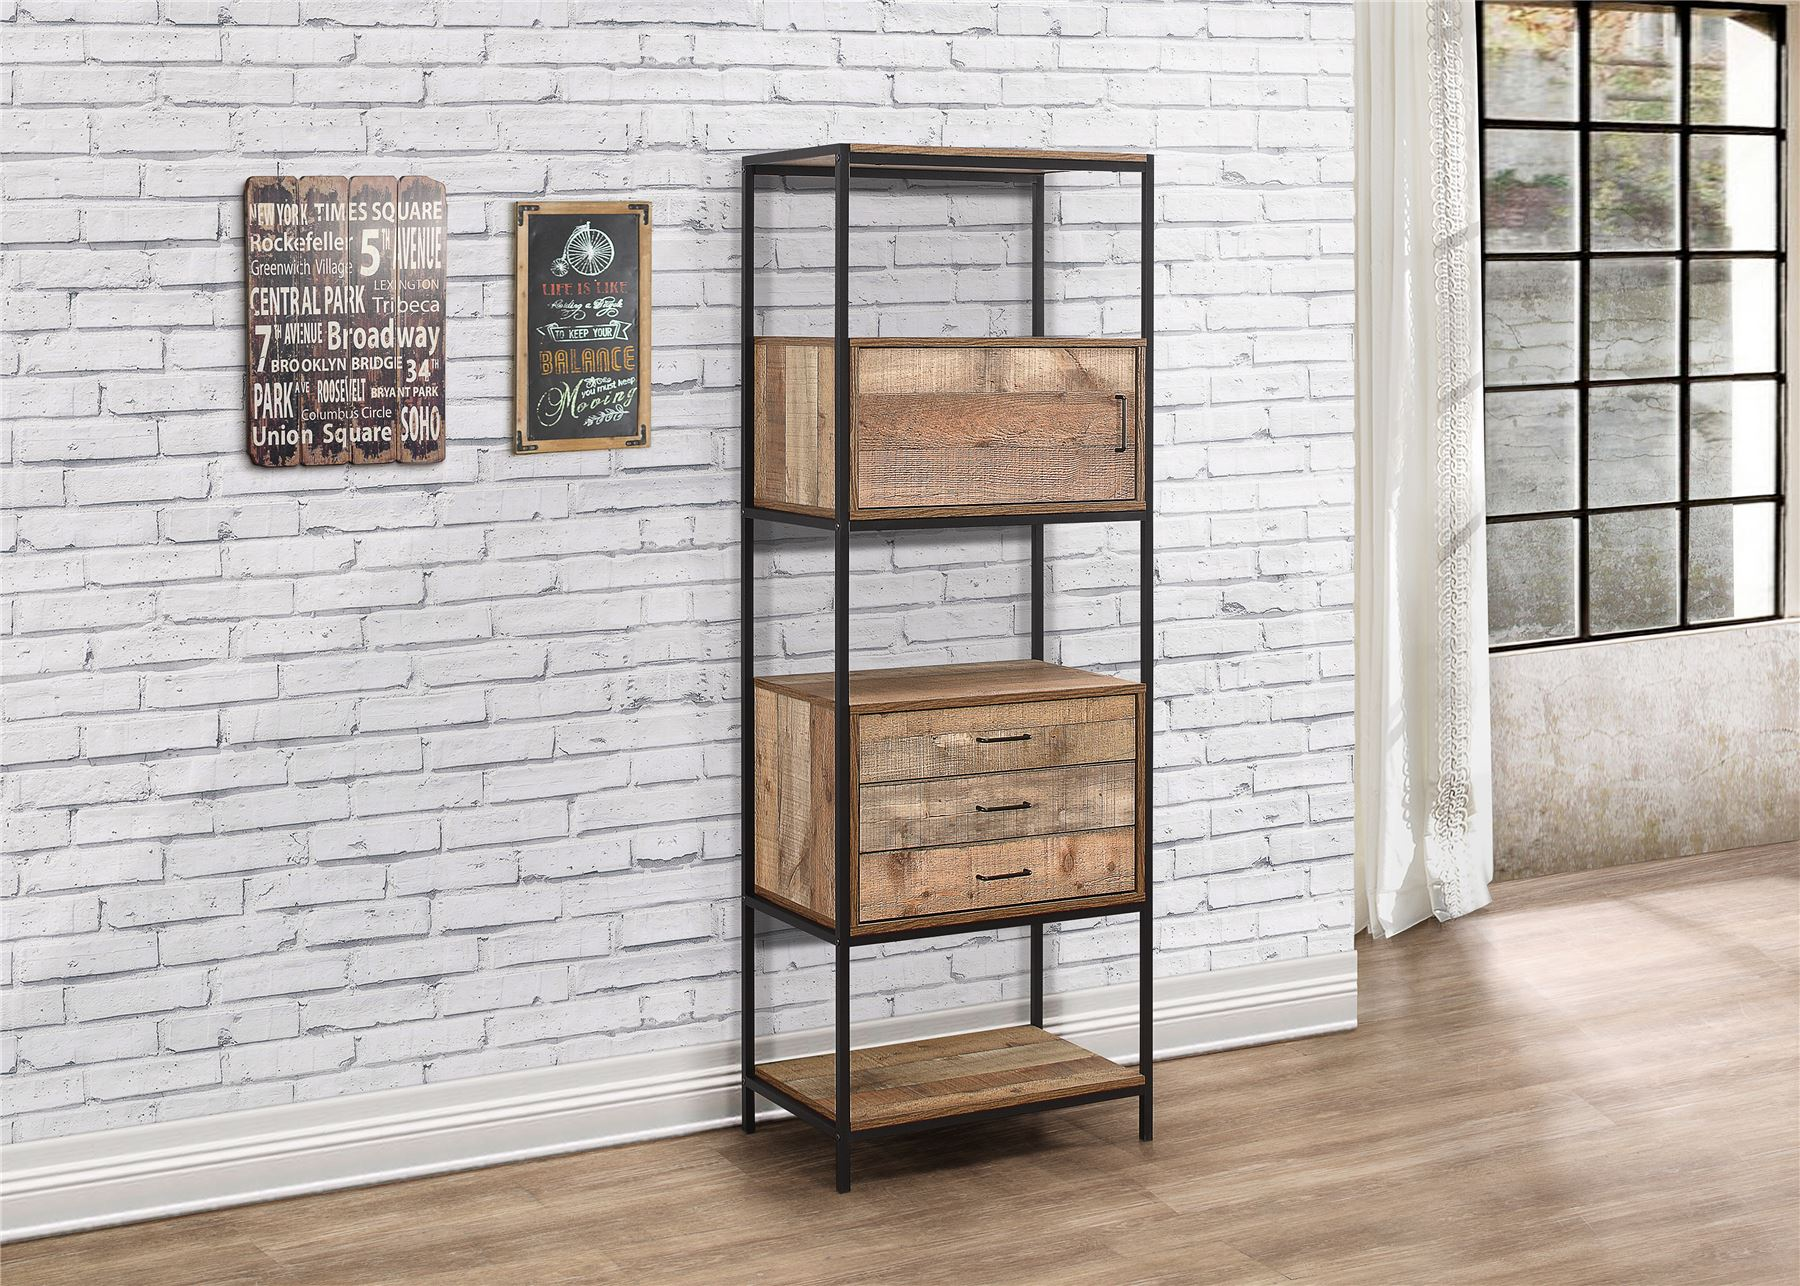 Birlea Urban Industrial Chic 3 Drawer Shelving Unit Bookcase Shelves Wood Metal